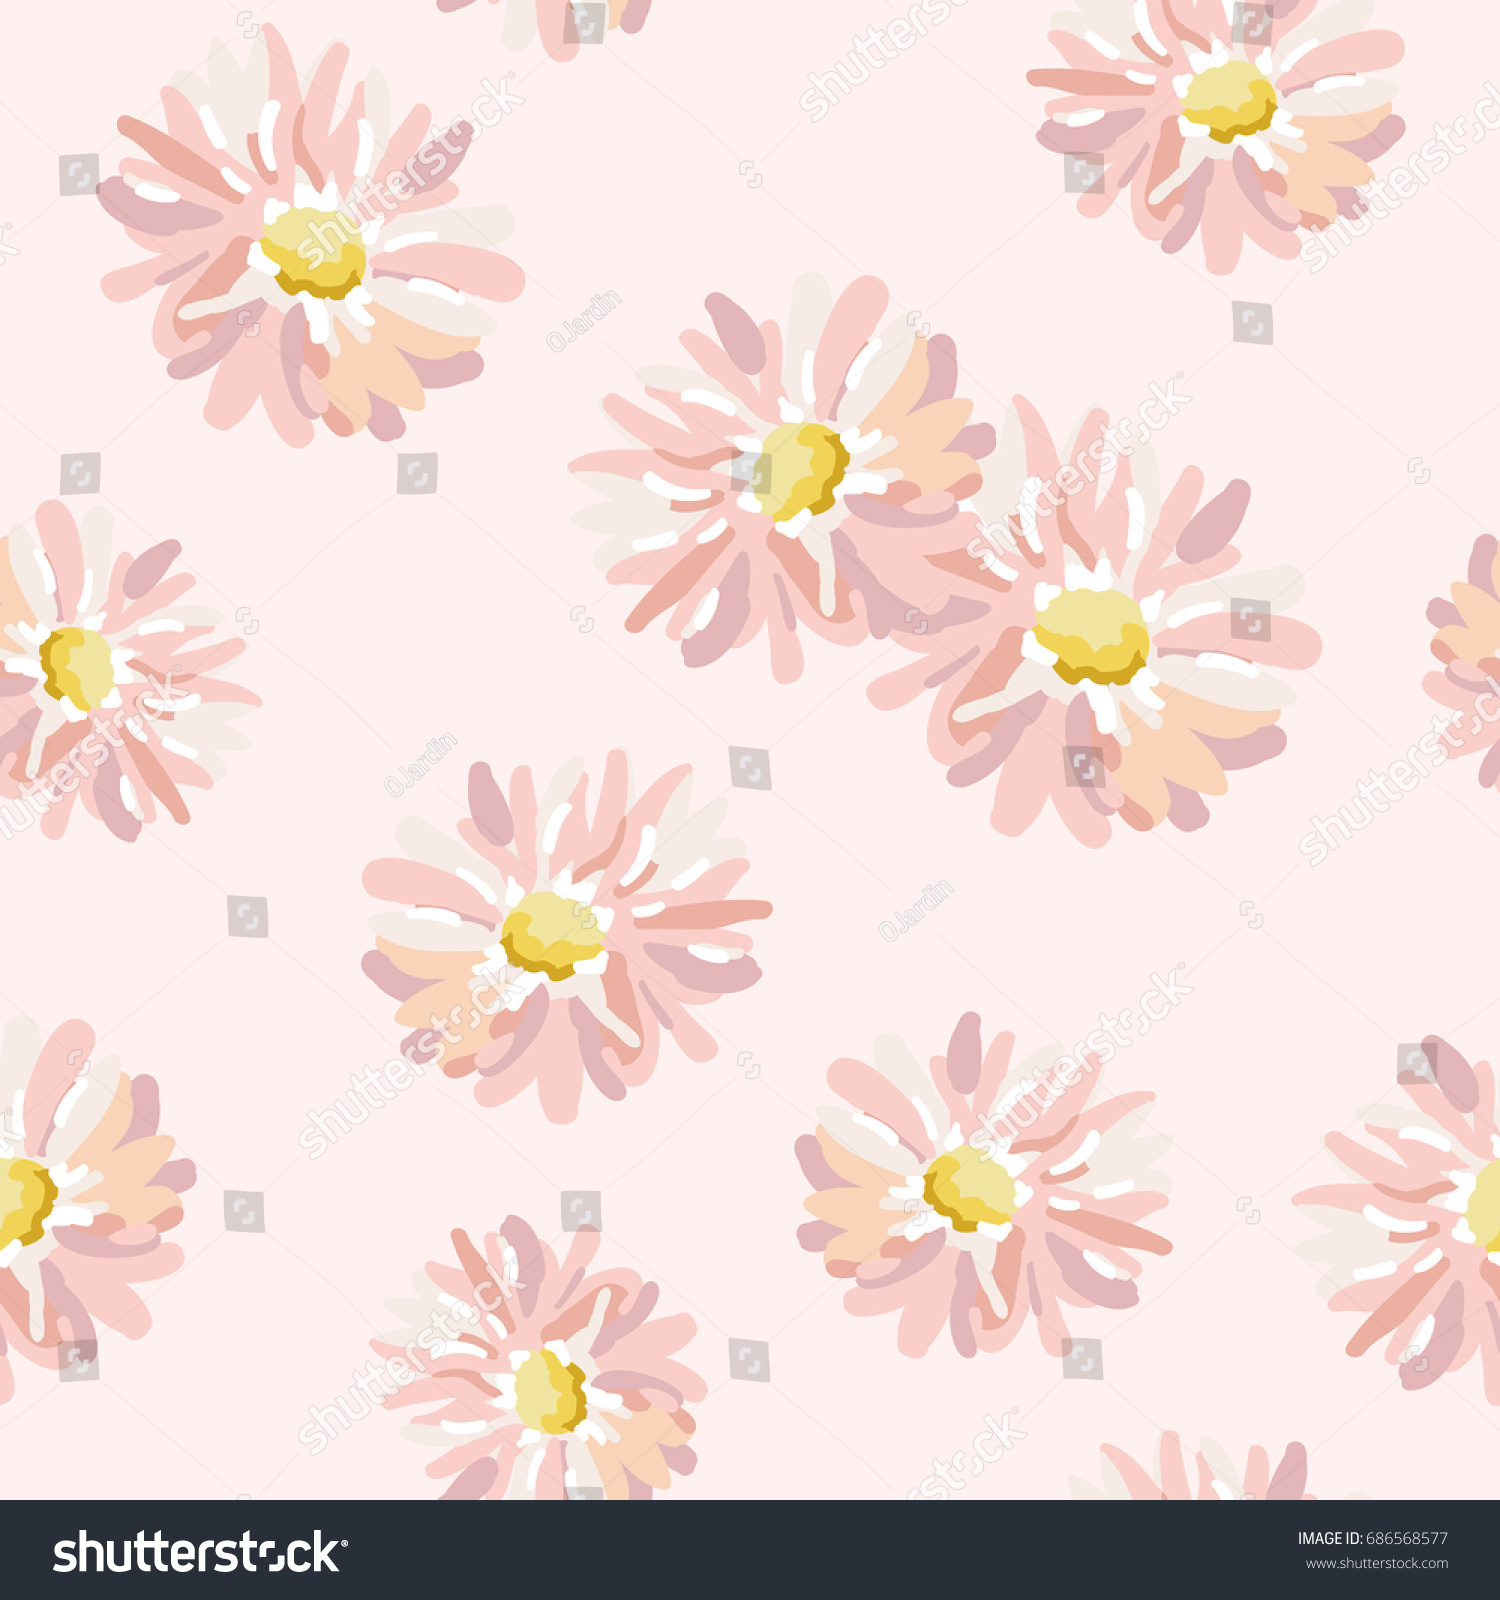 Blush Pink Floral Background Images Stock Photos Vectors